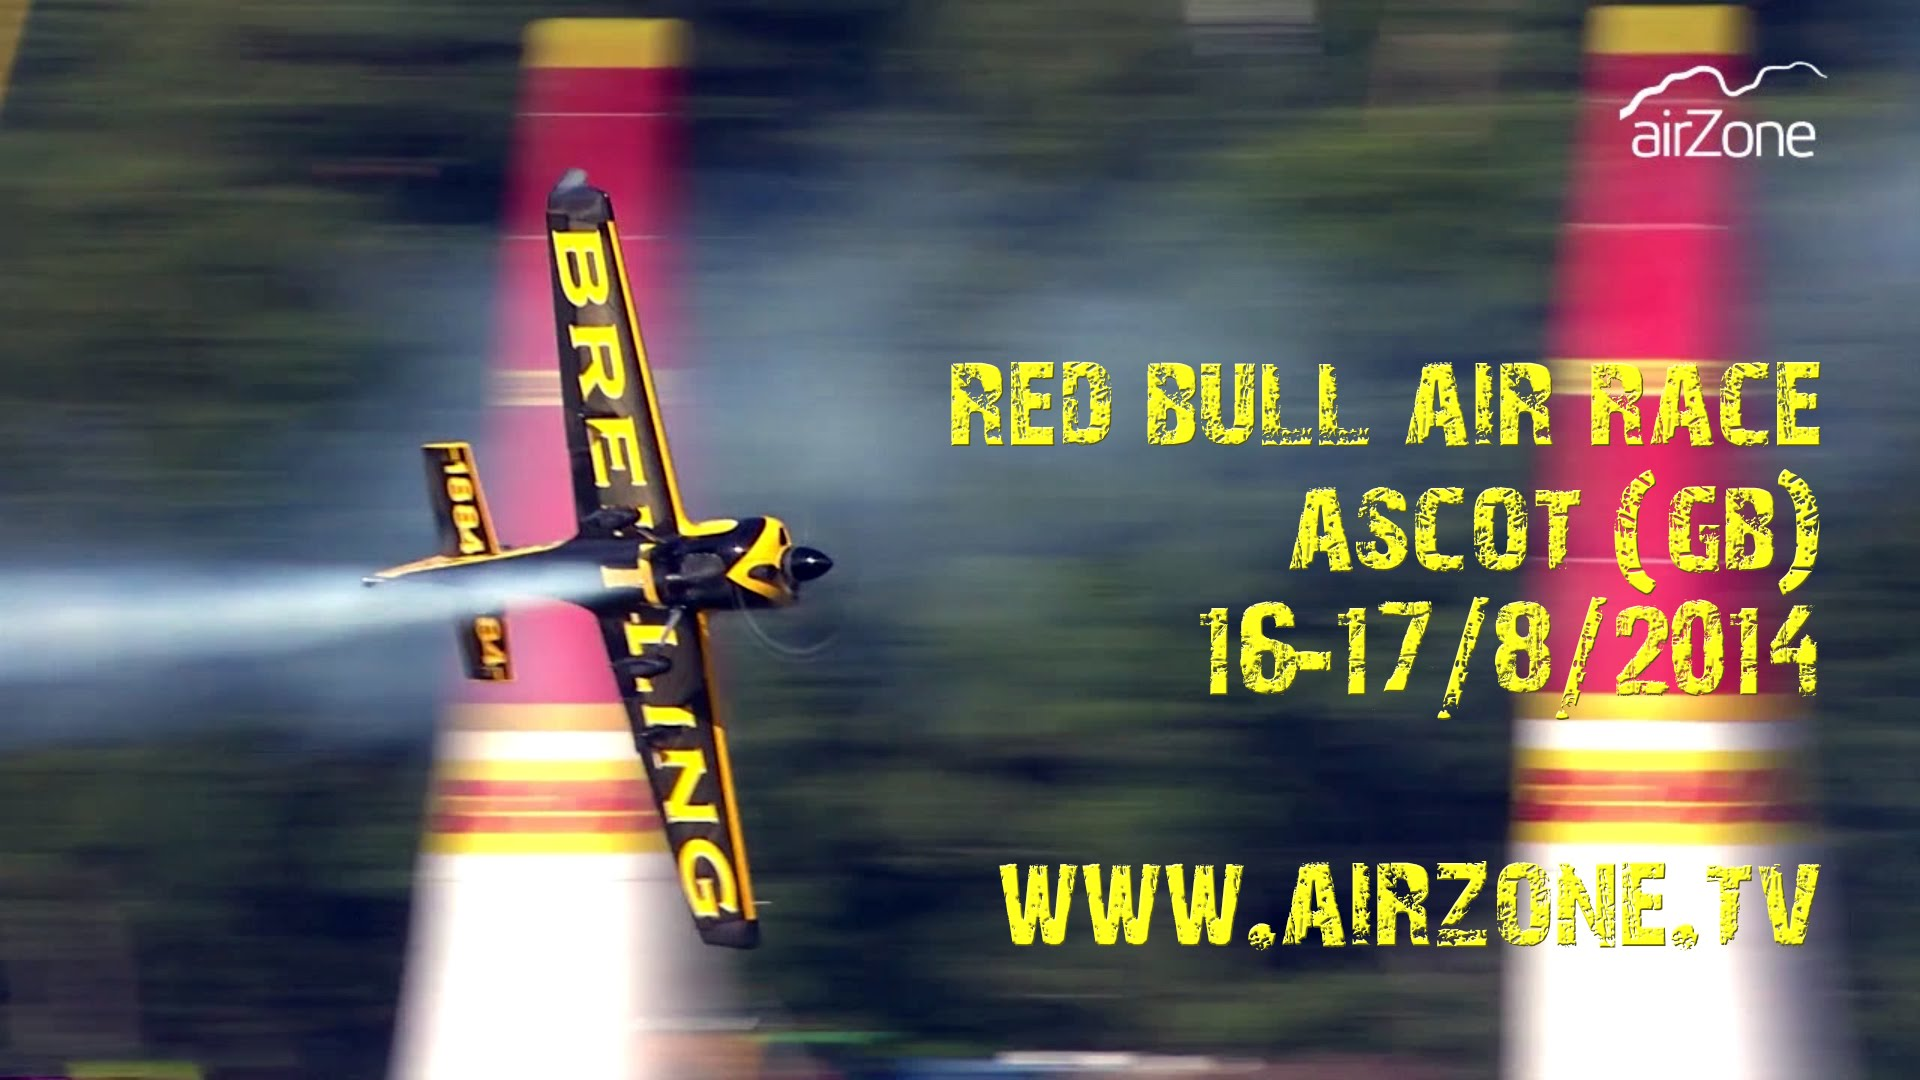 Magazín AIRZONE 08/2014 – 19. 8. 2014 – RED BULL AIR RACE ASCOT!